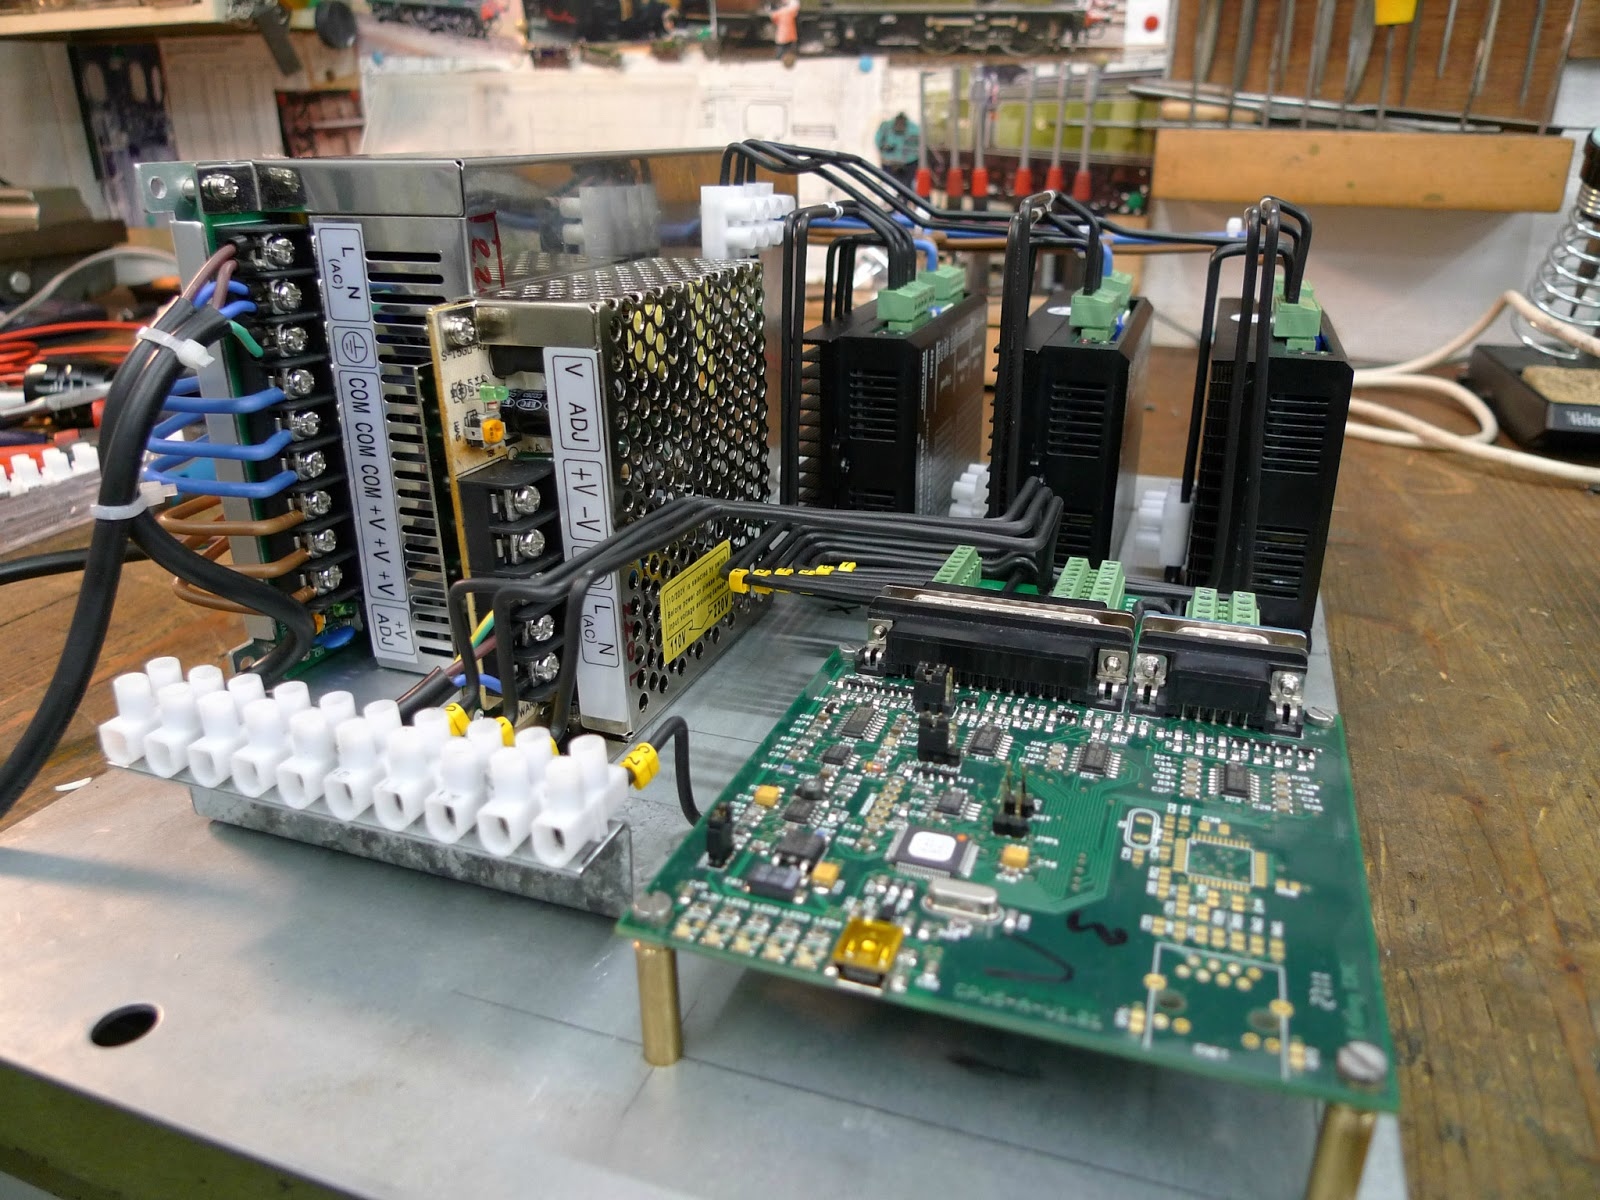 Wrttembergische T3 Cnc Needed For Numberplates Power Wiring Diagram I